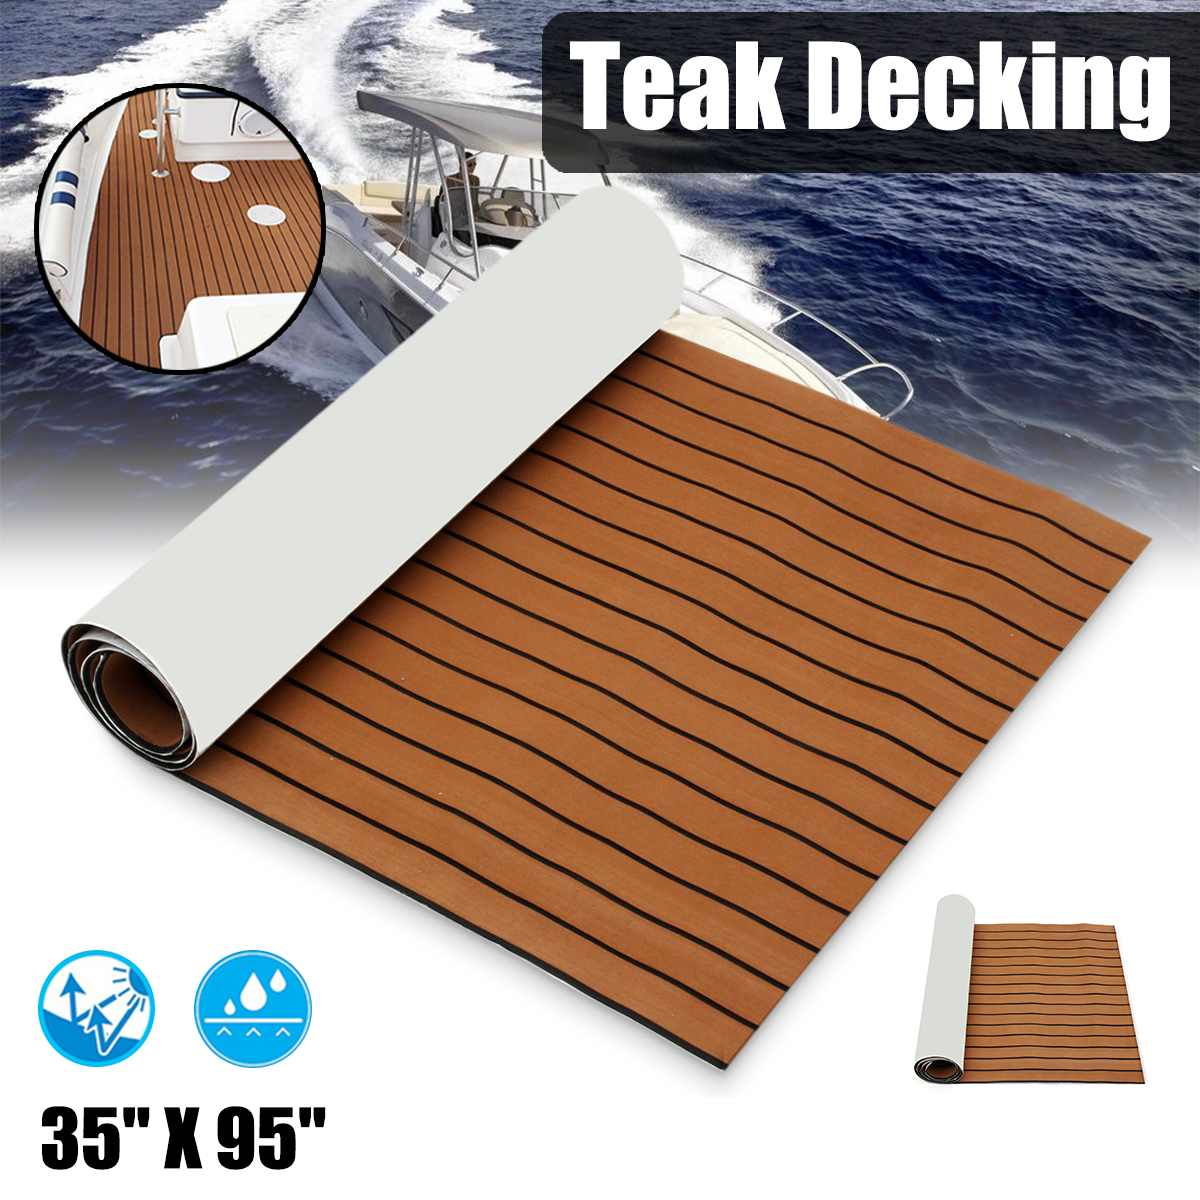 Teak Sheet Boat-Accessories Decking Marine Boat Foam-Yacht Flooring Synthetic EVA Dark-Brown